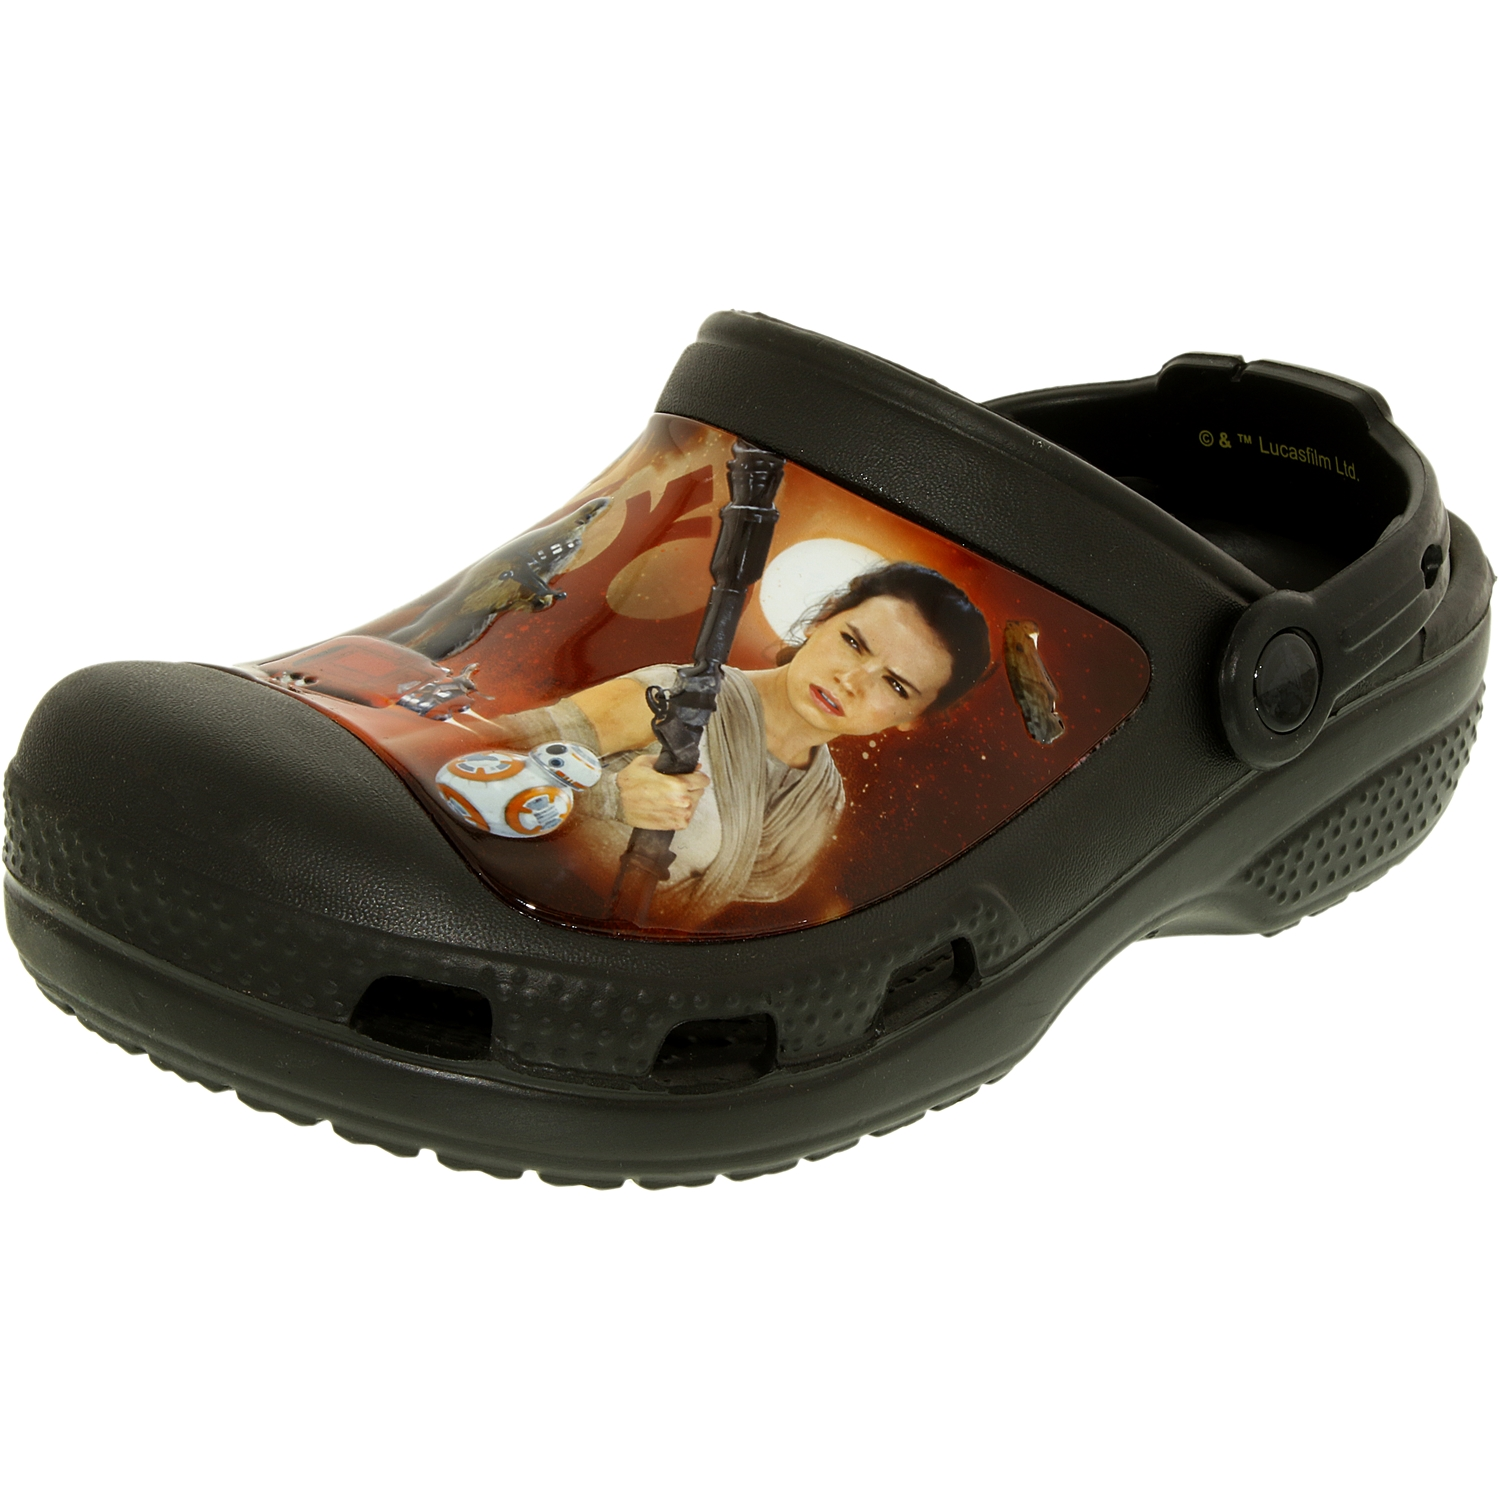 Crocs Boy's Star Wars Black Ankle-High Rubber Flat Shoe 3M by Crocs